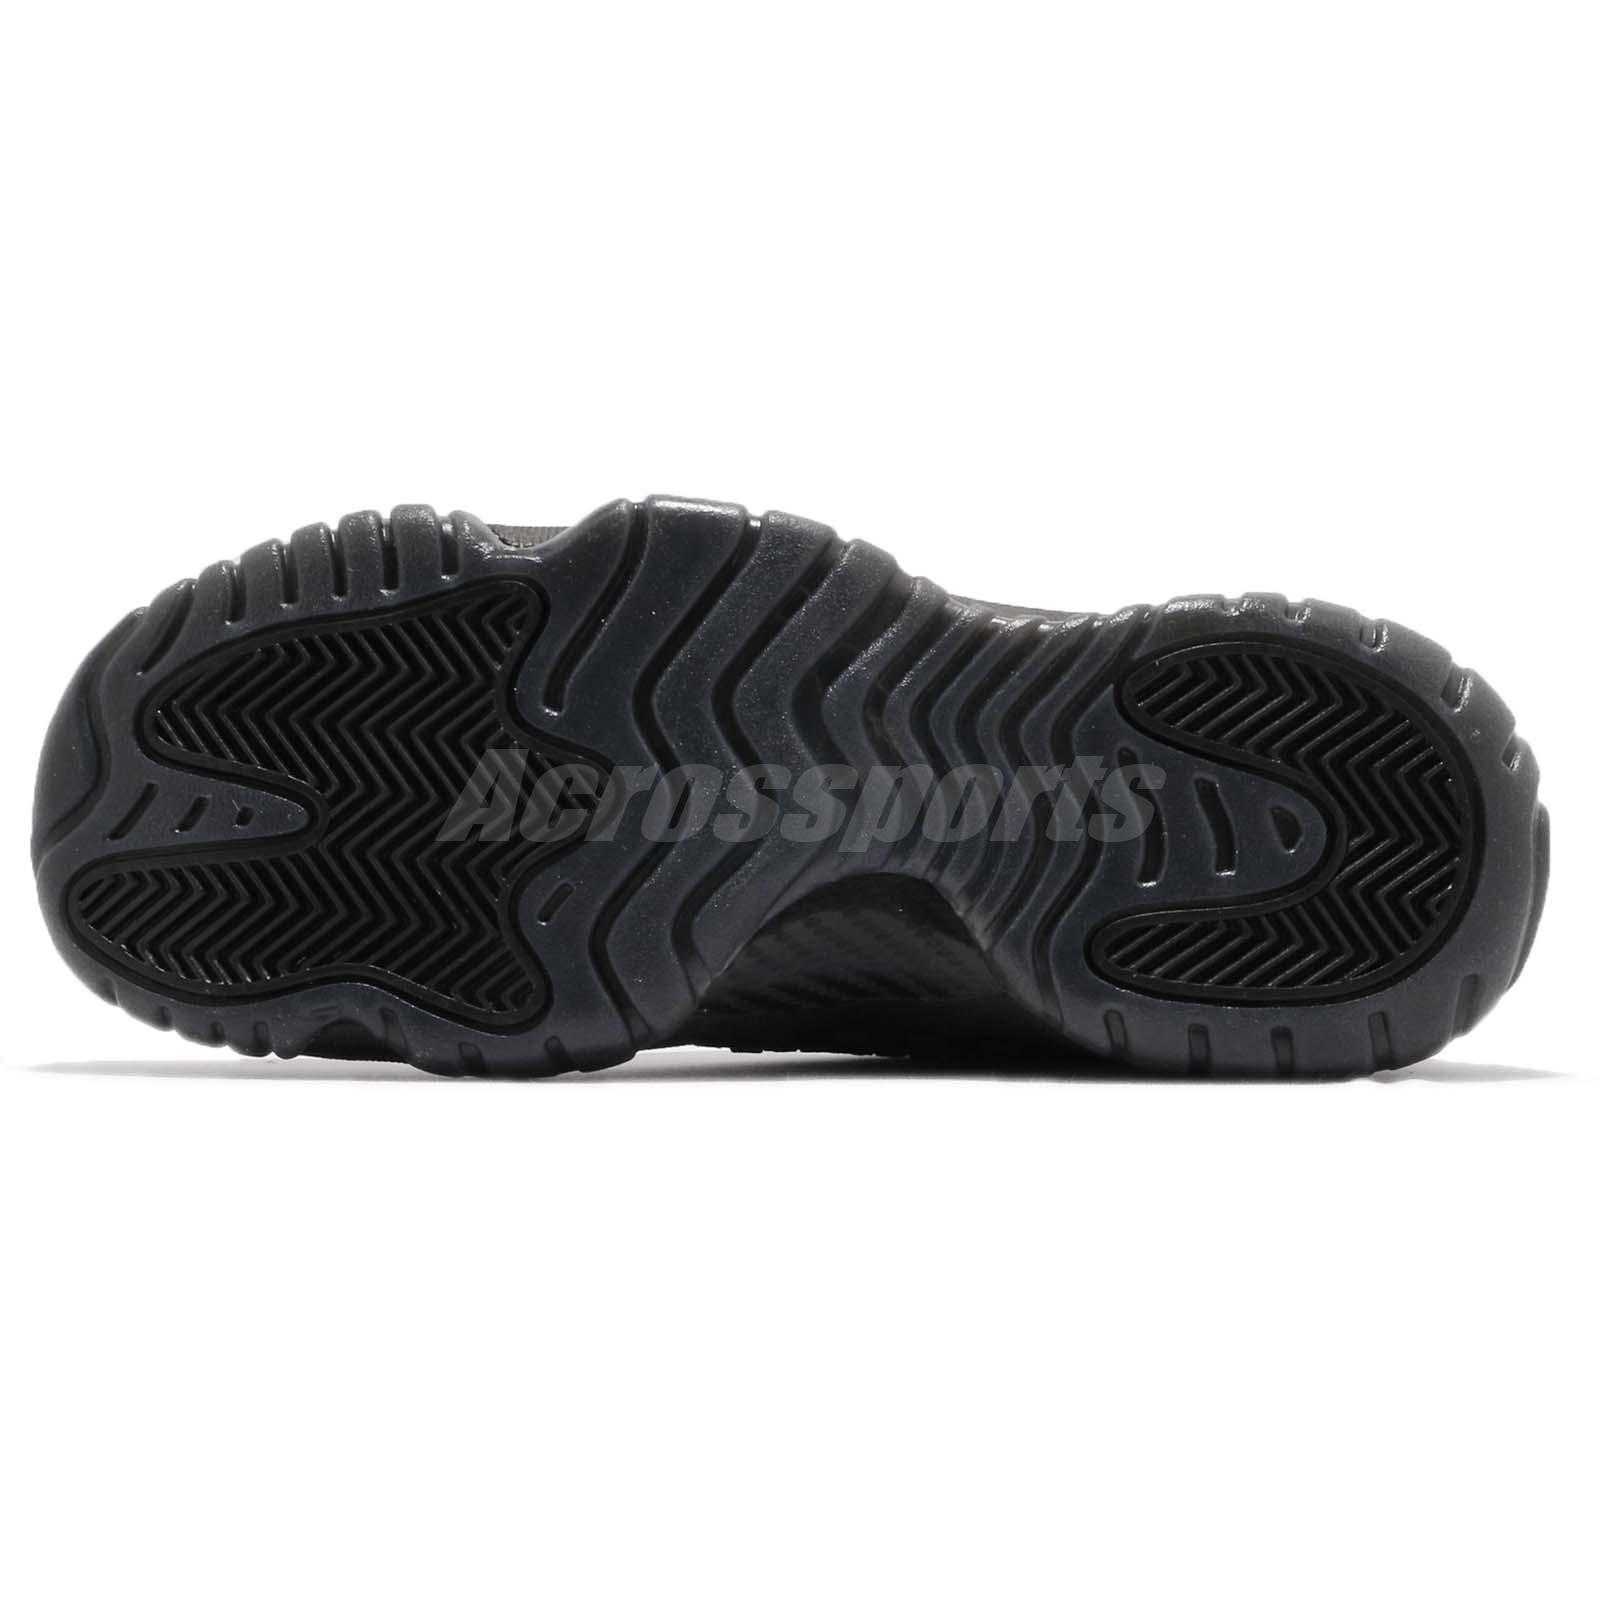 Nike Air Jordan Future Bg Black Anthracite Kid Youth Women Shoes 656504-001 Athletic Shoes Clothing, Shoes & Accessories